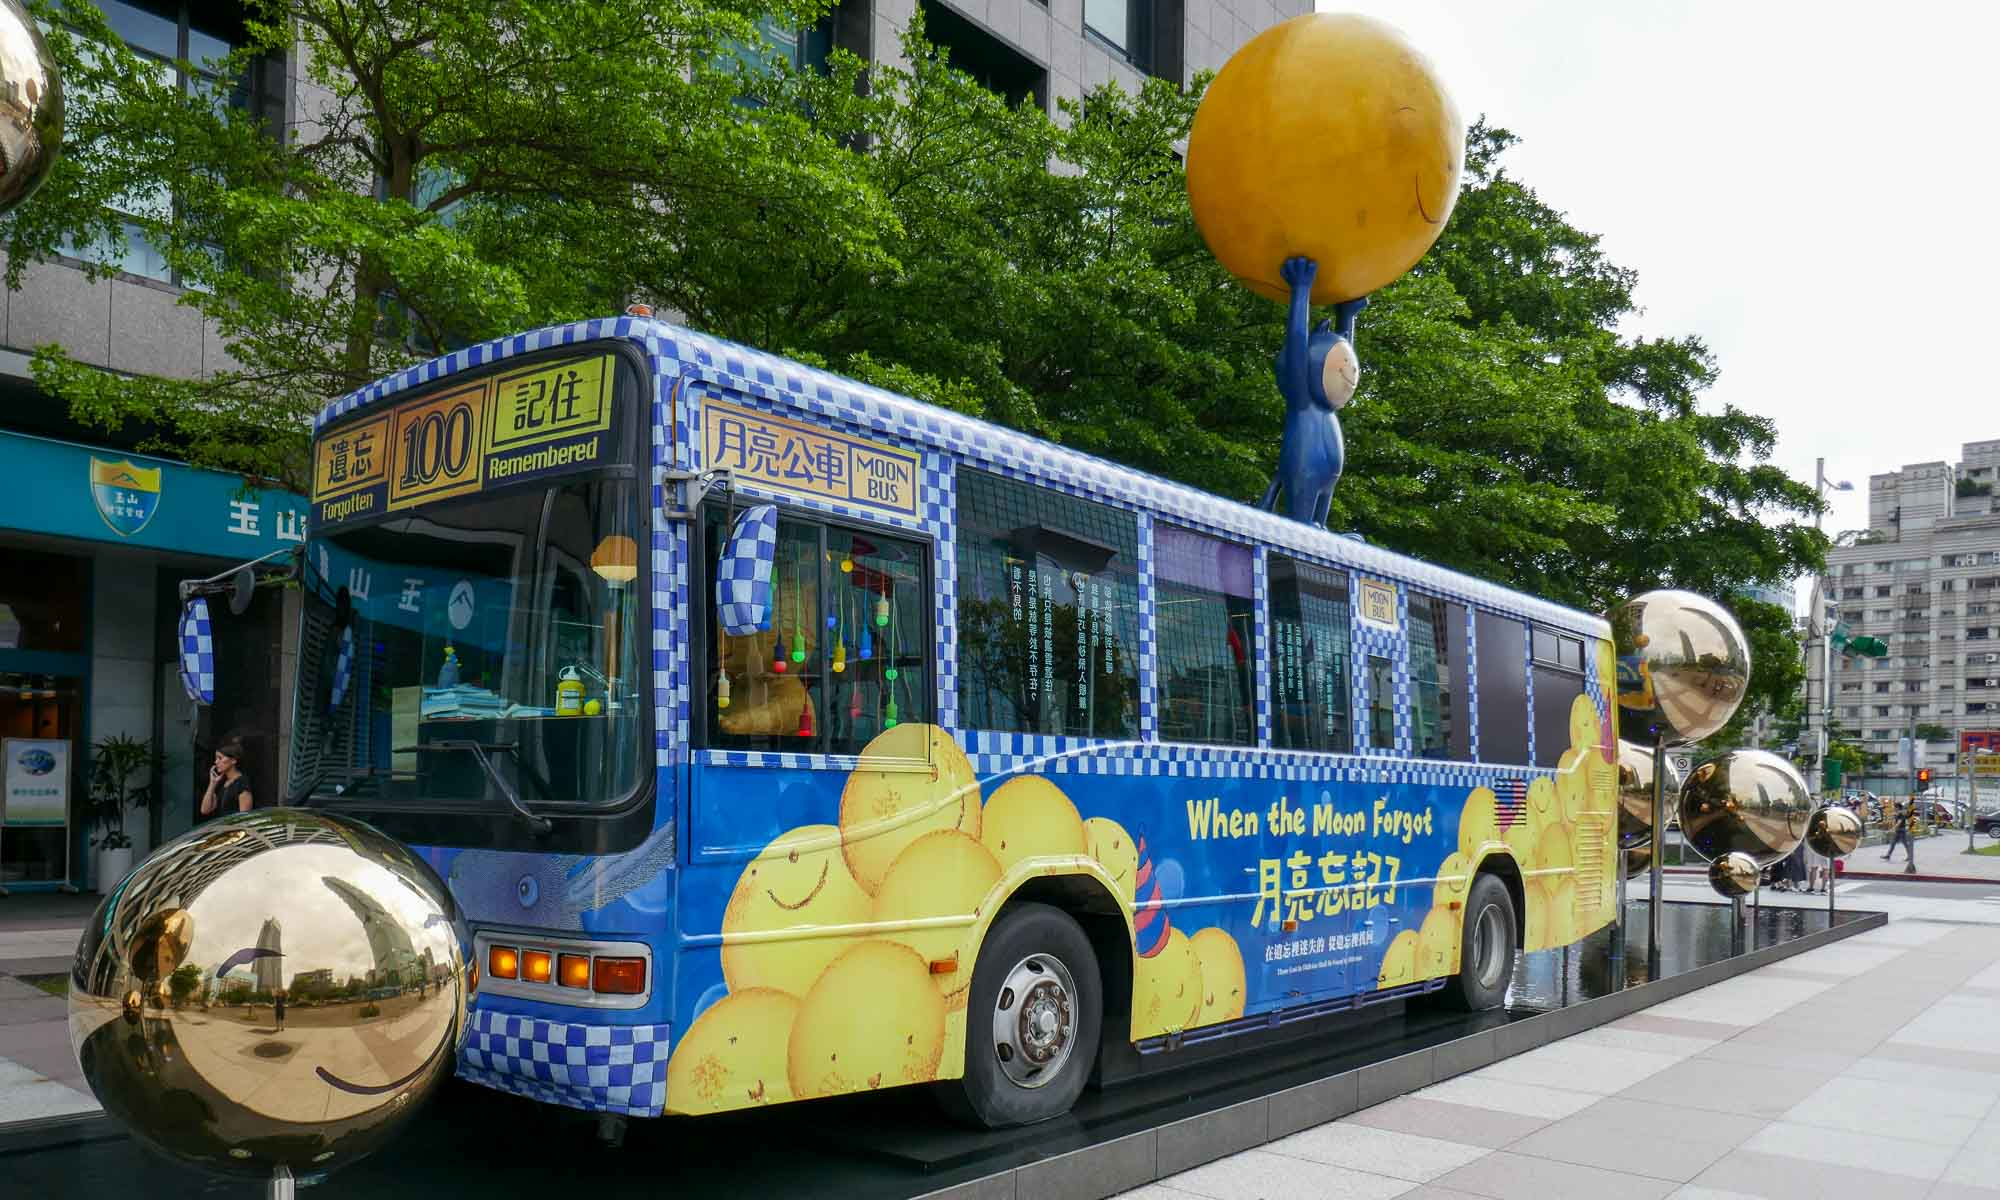 The 'When the moon forgot' bus, based on a children's book written by Taiwanese author Jimmy Liao